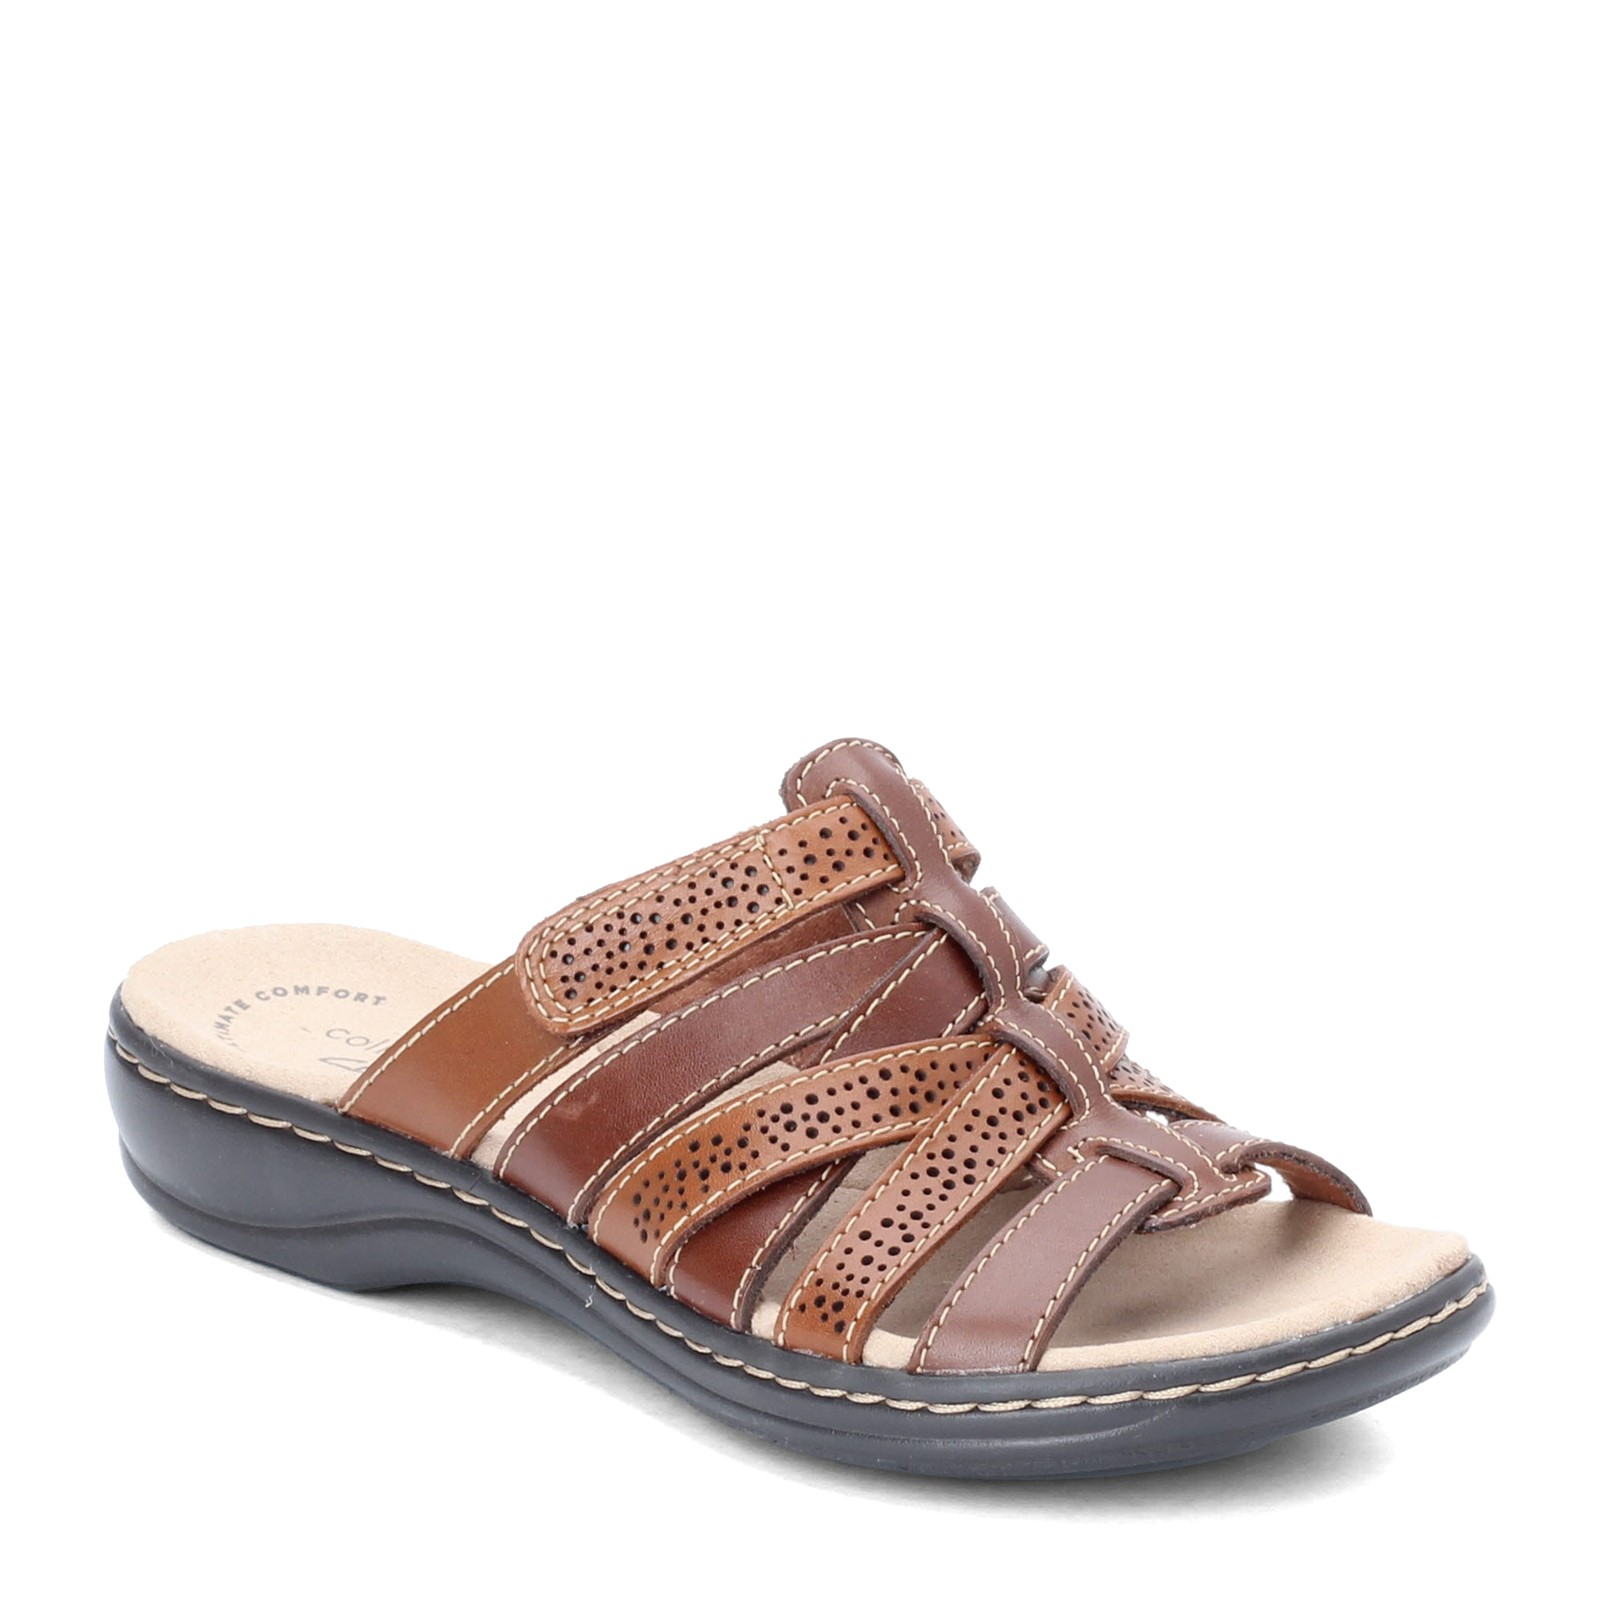 Women's Clarks, Leisa Field Slide